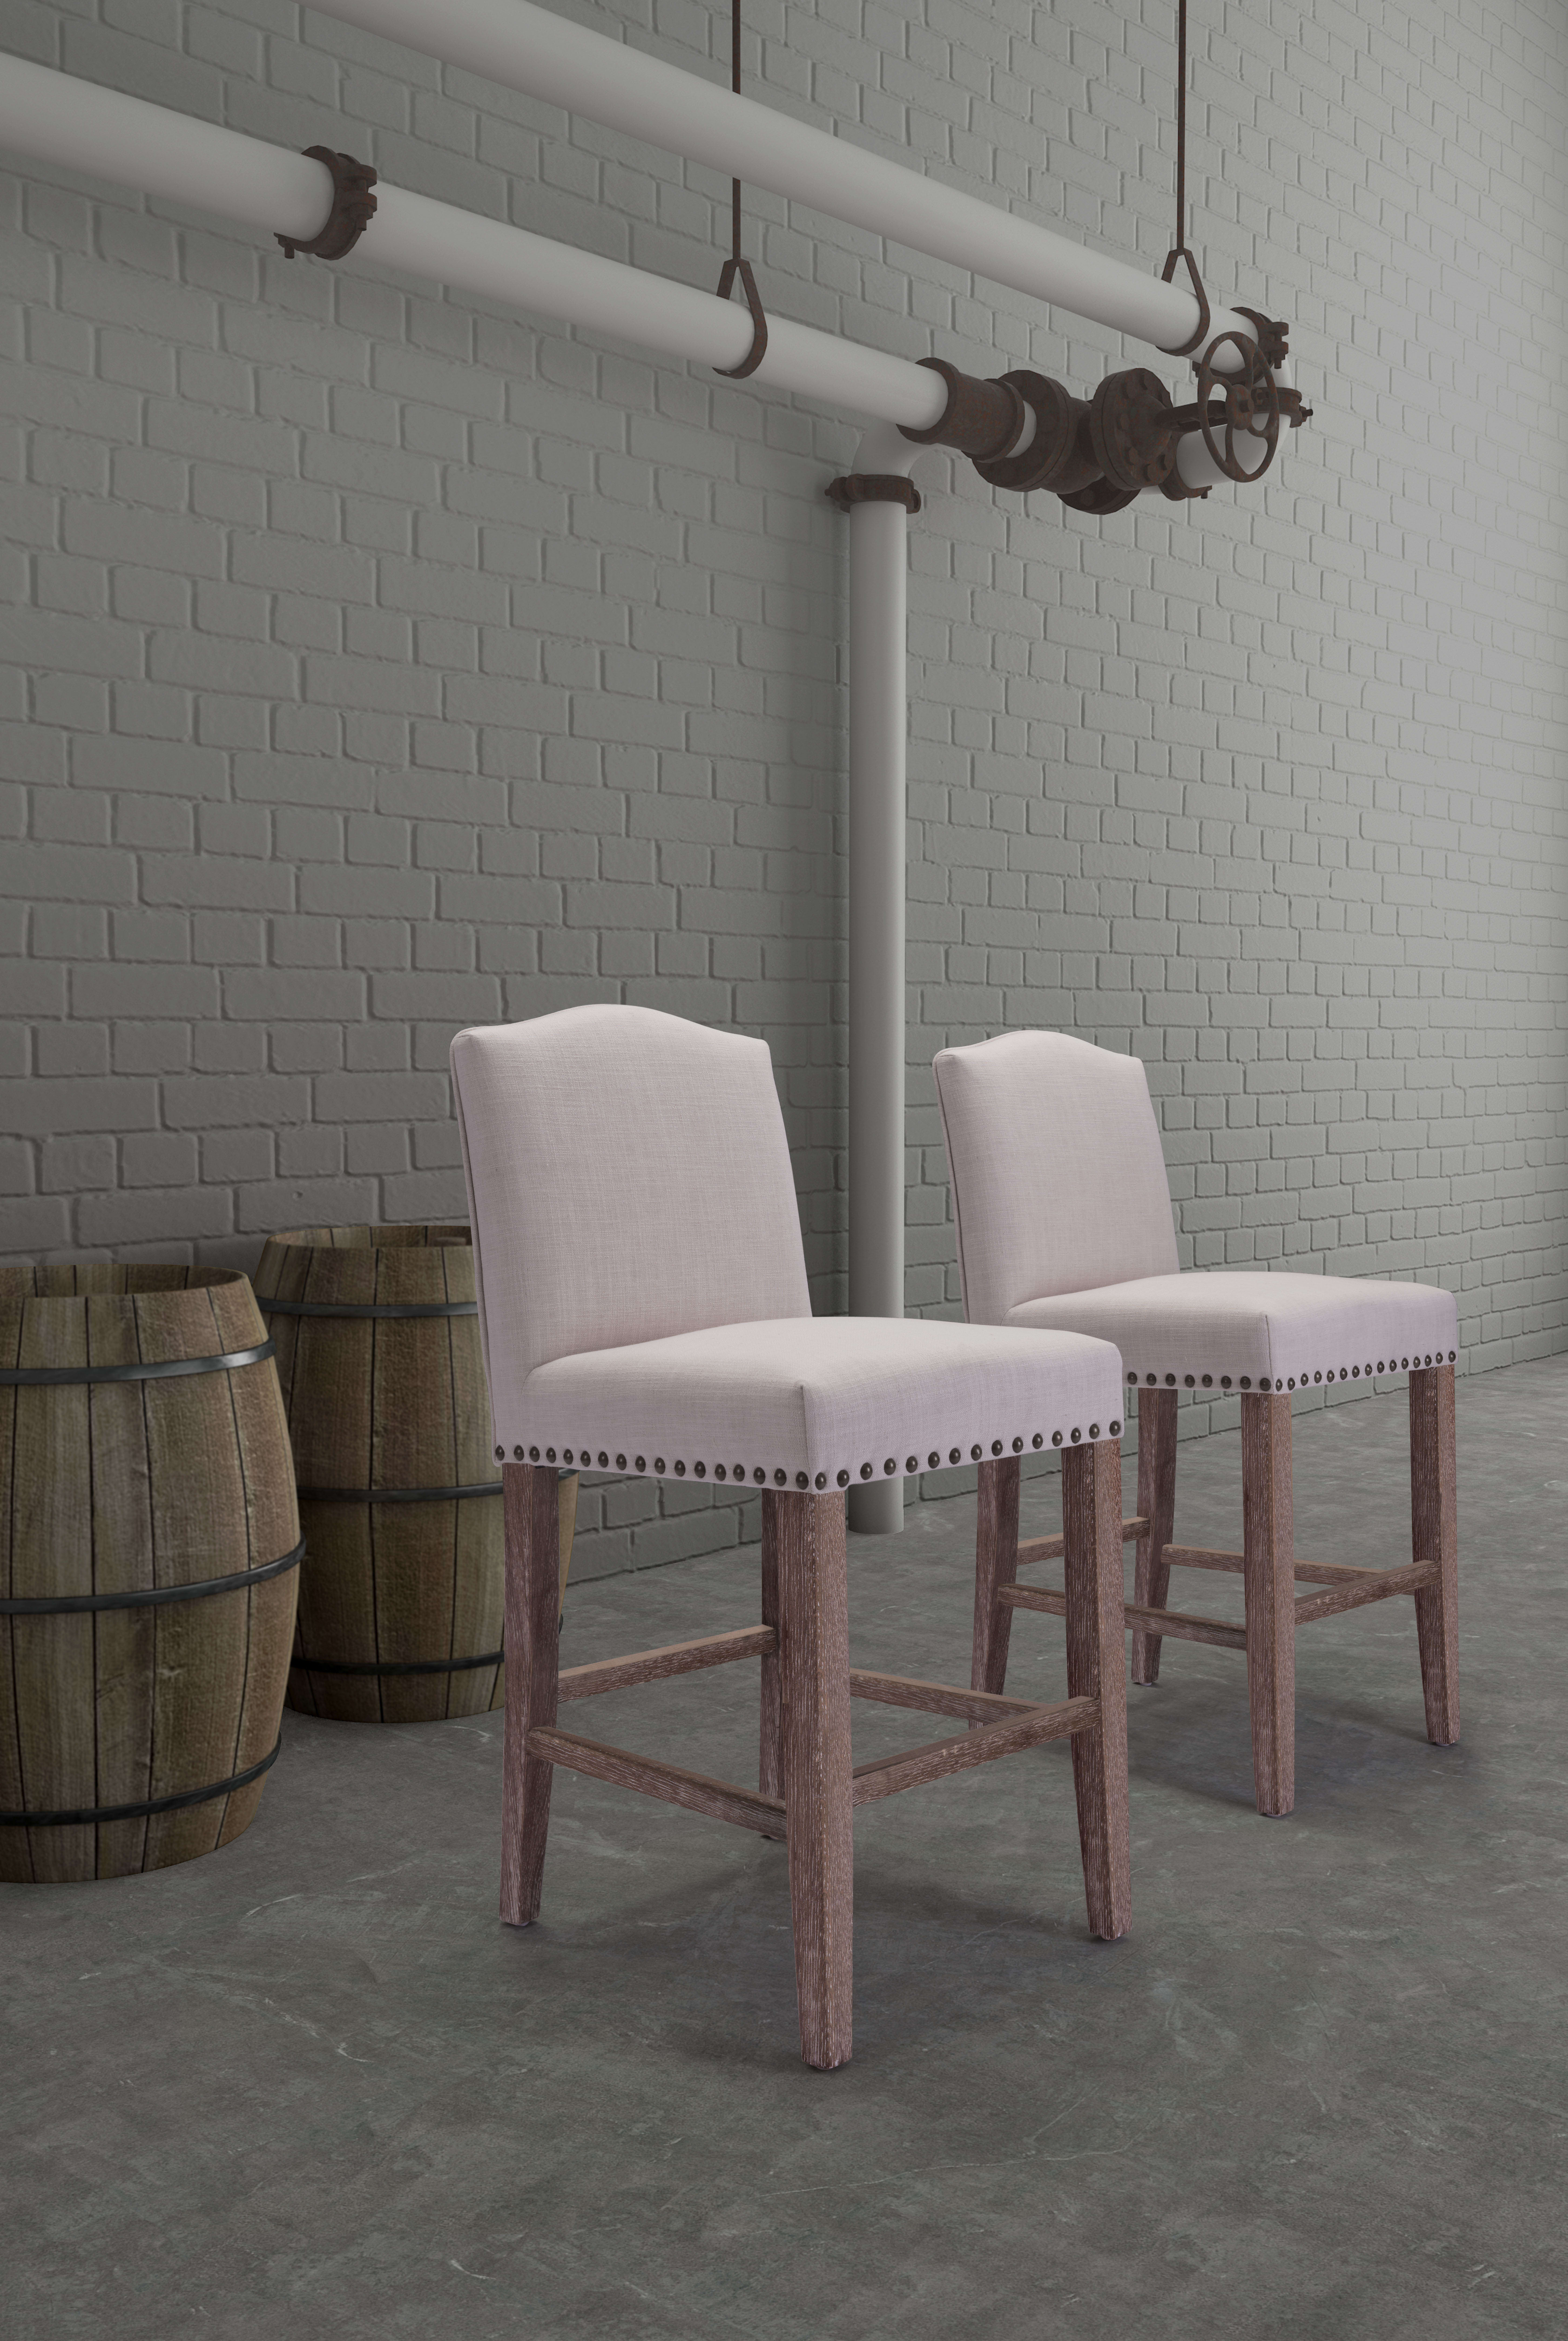 Zuo modern stools indoor furniture pasadena bar chair